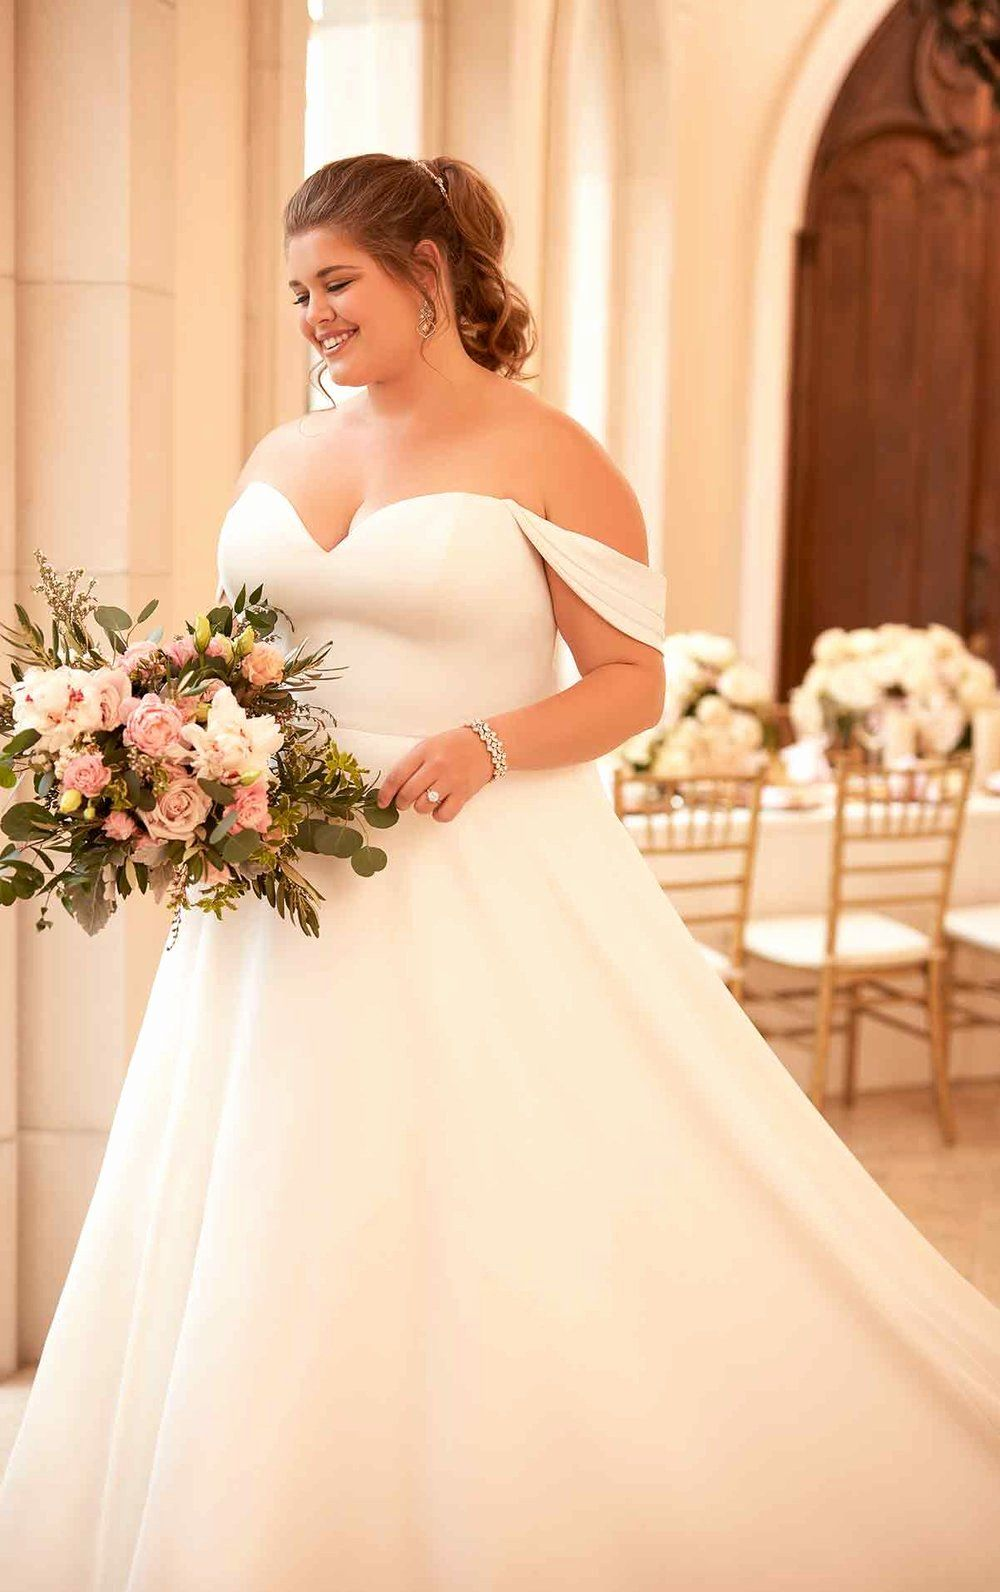 Non Traditional Wedding Dresses Plus Size in 2020 Plus